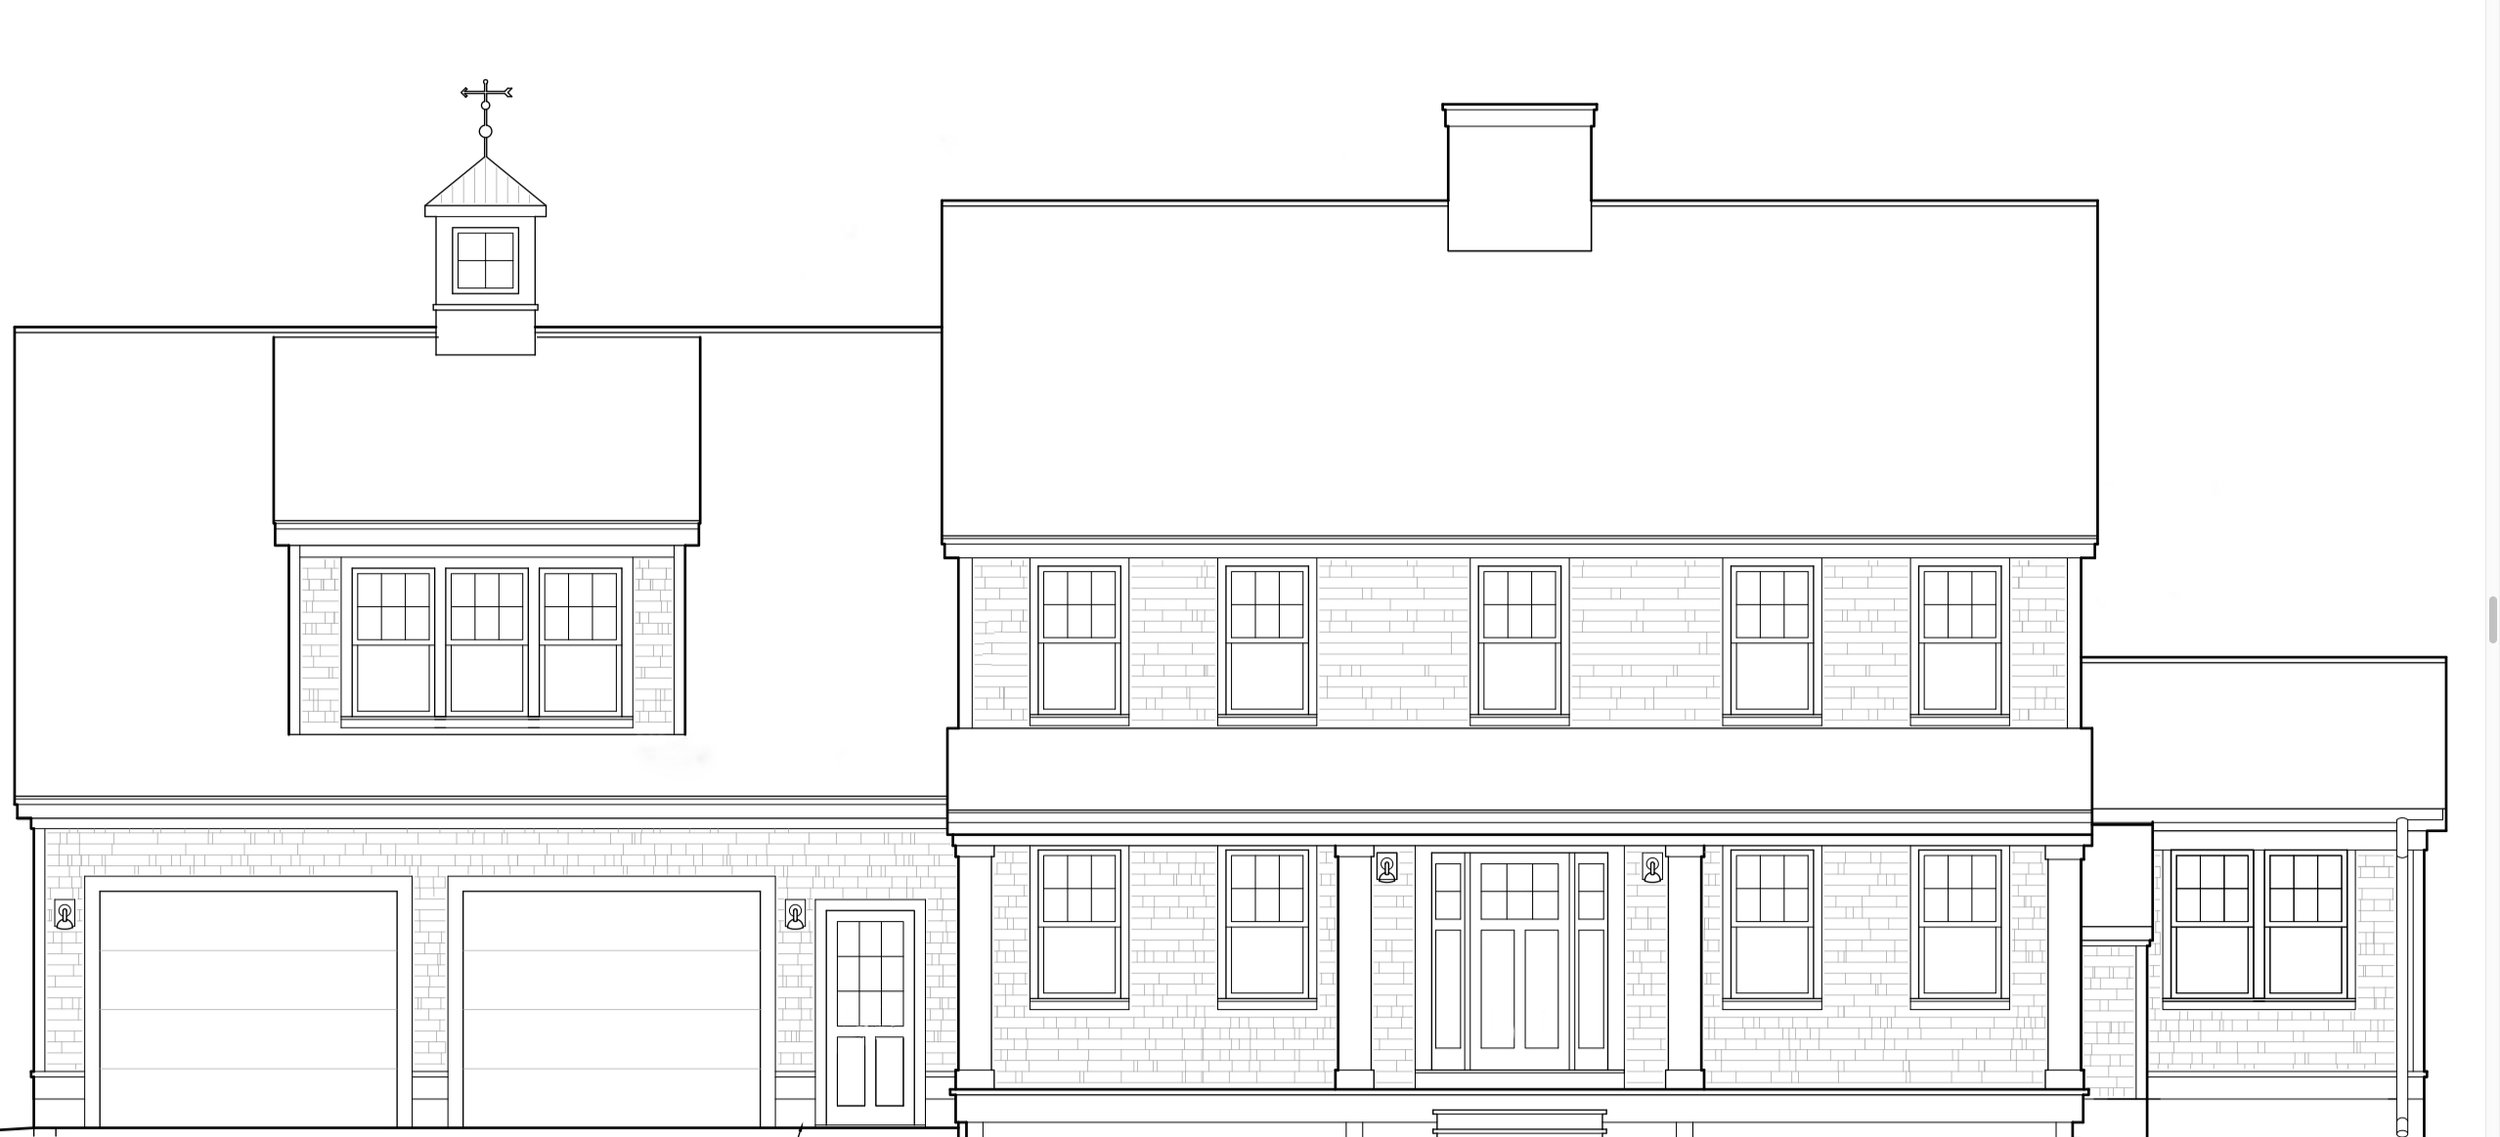 23 sgd front elevation from plans.jpg